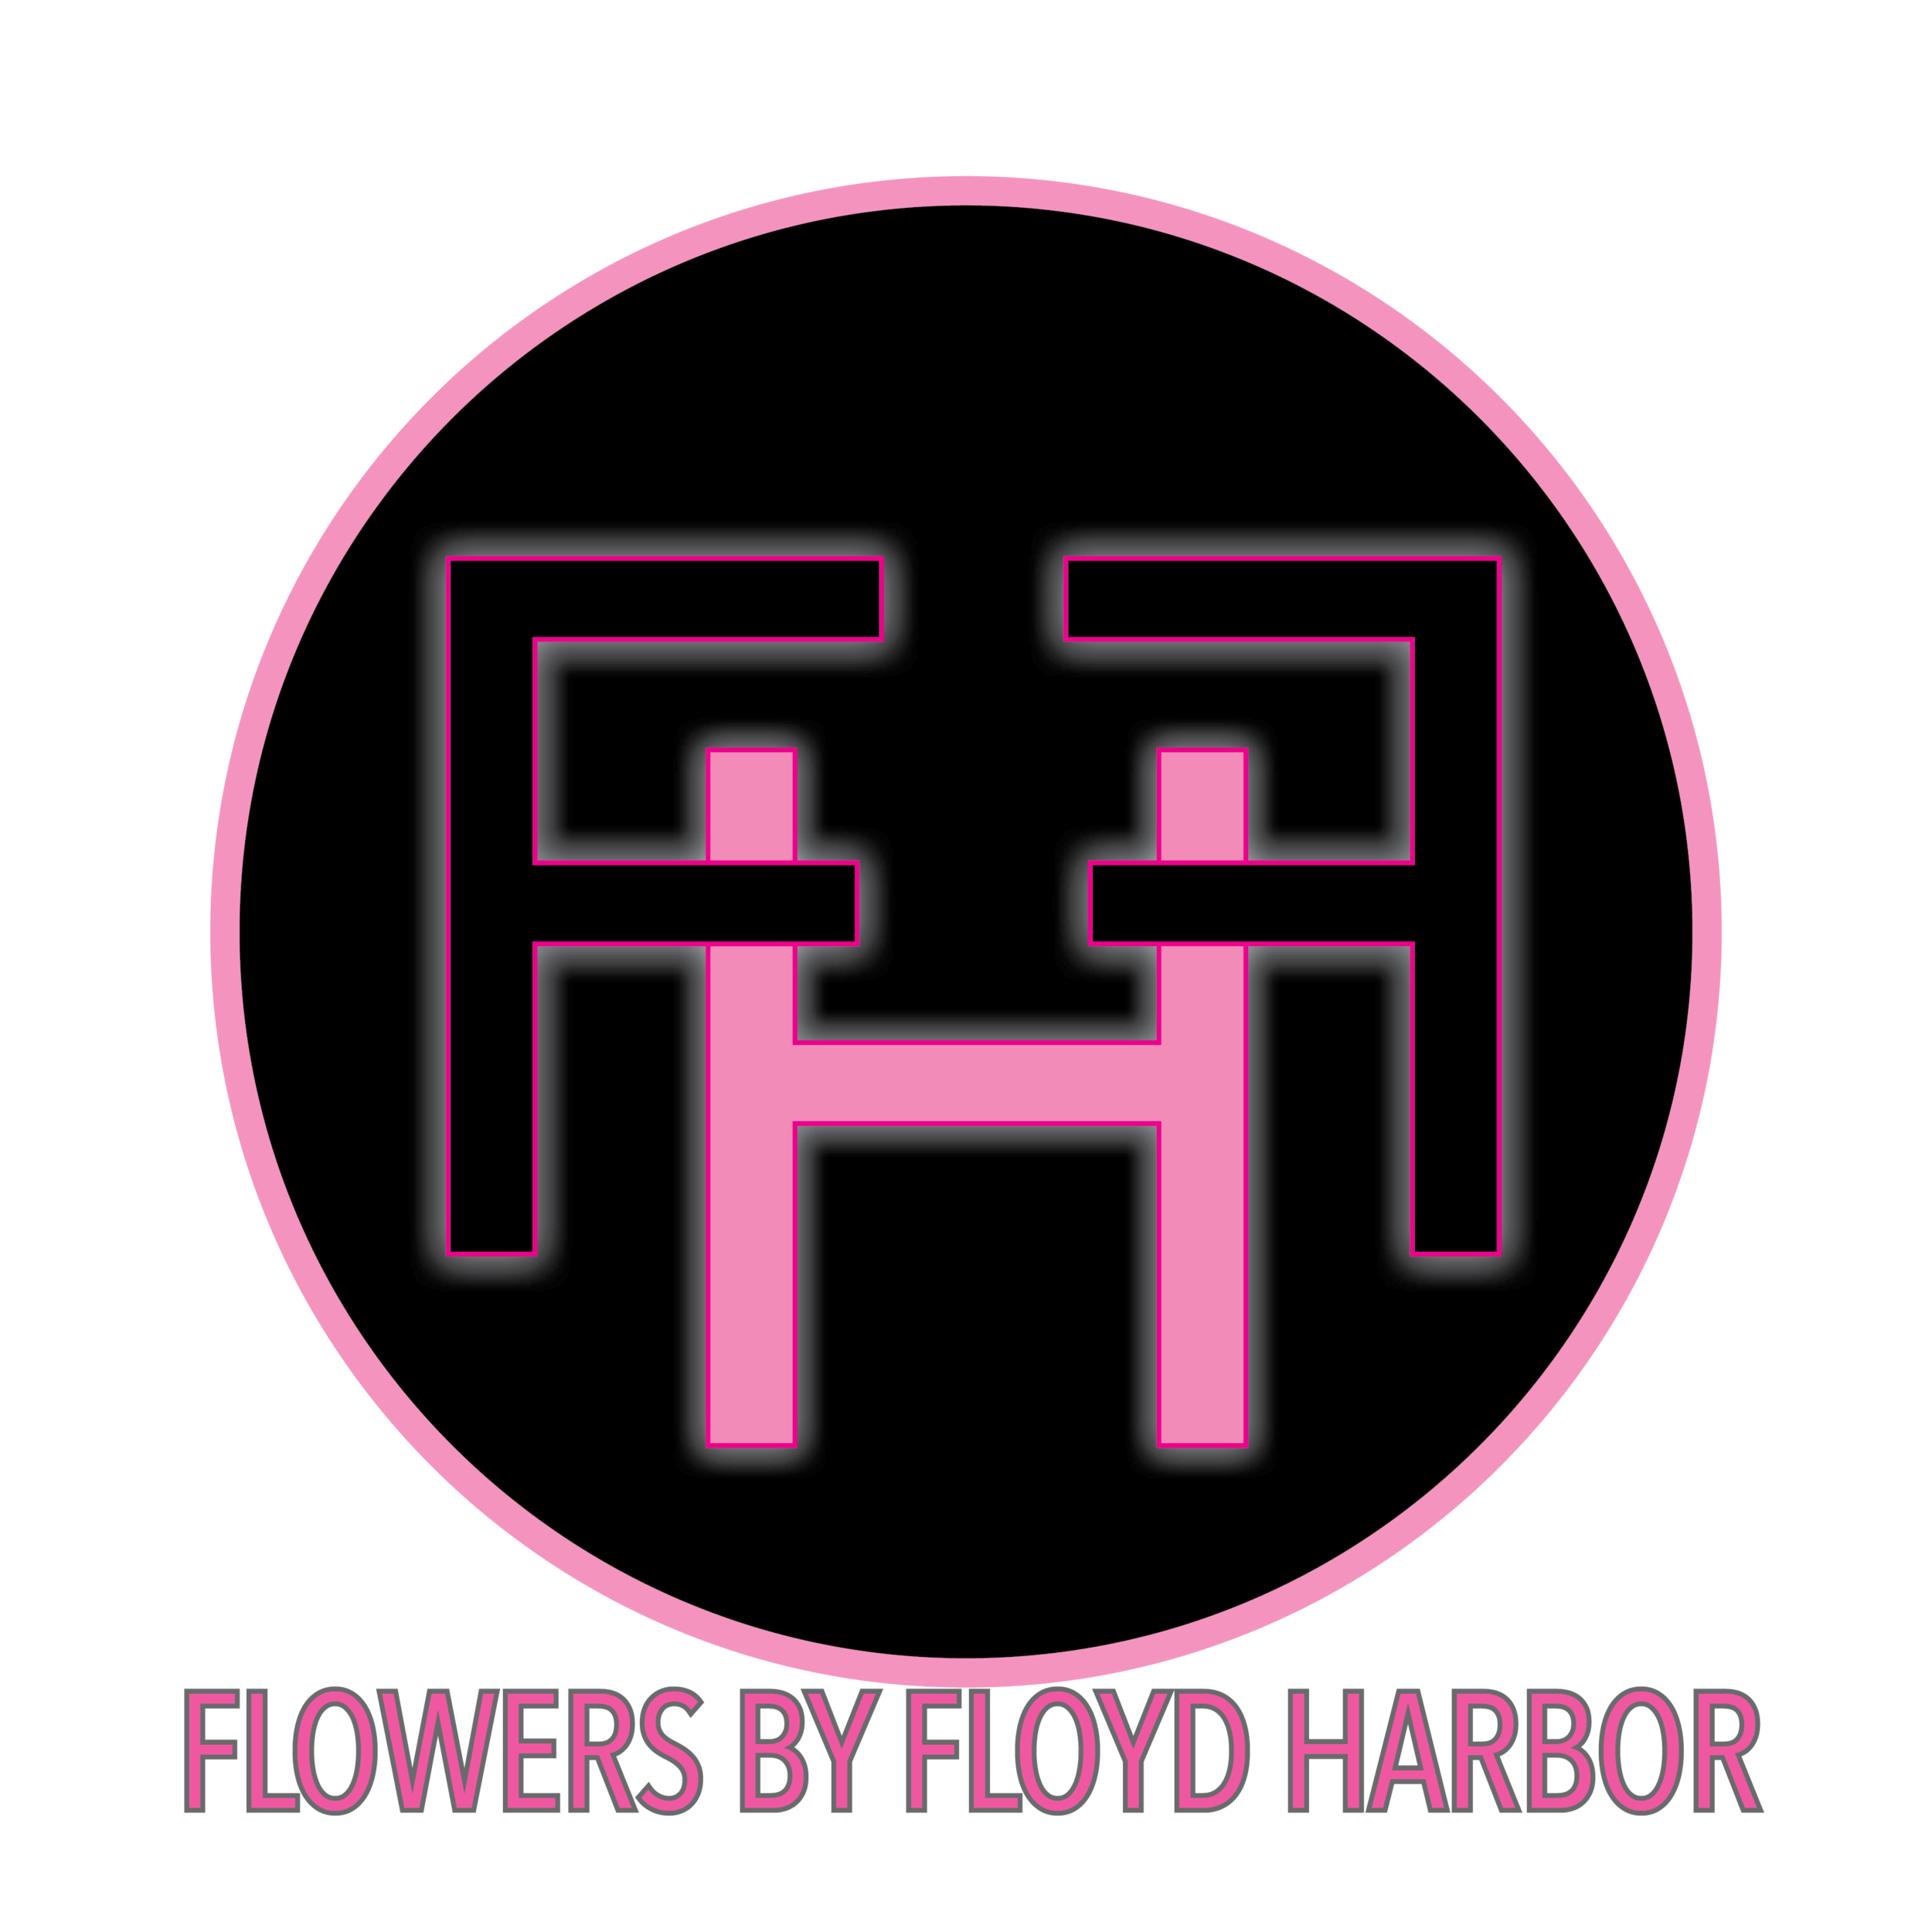 Family owned and operated for over twenty years, Flowers by Floyd Harbor continues to add beauty and elegance with every arrangement.  -